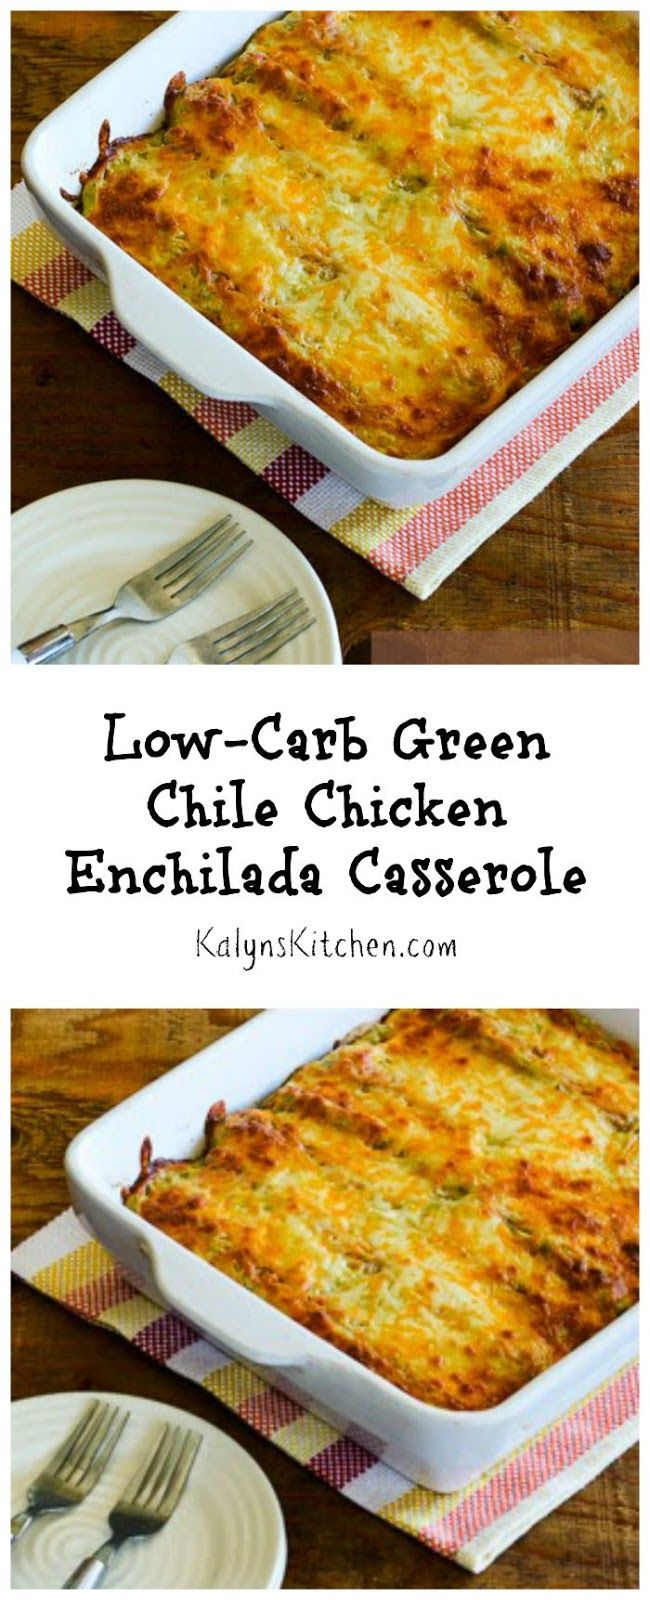 No one will know you used low-carb tortillas for this Low-Carb Green Chile Chicken Enchilada Casserole; these enchiladas are kid-friendly and can freeze too! [from KalynsKitchen.com]